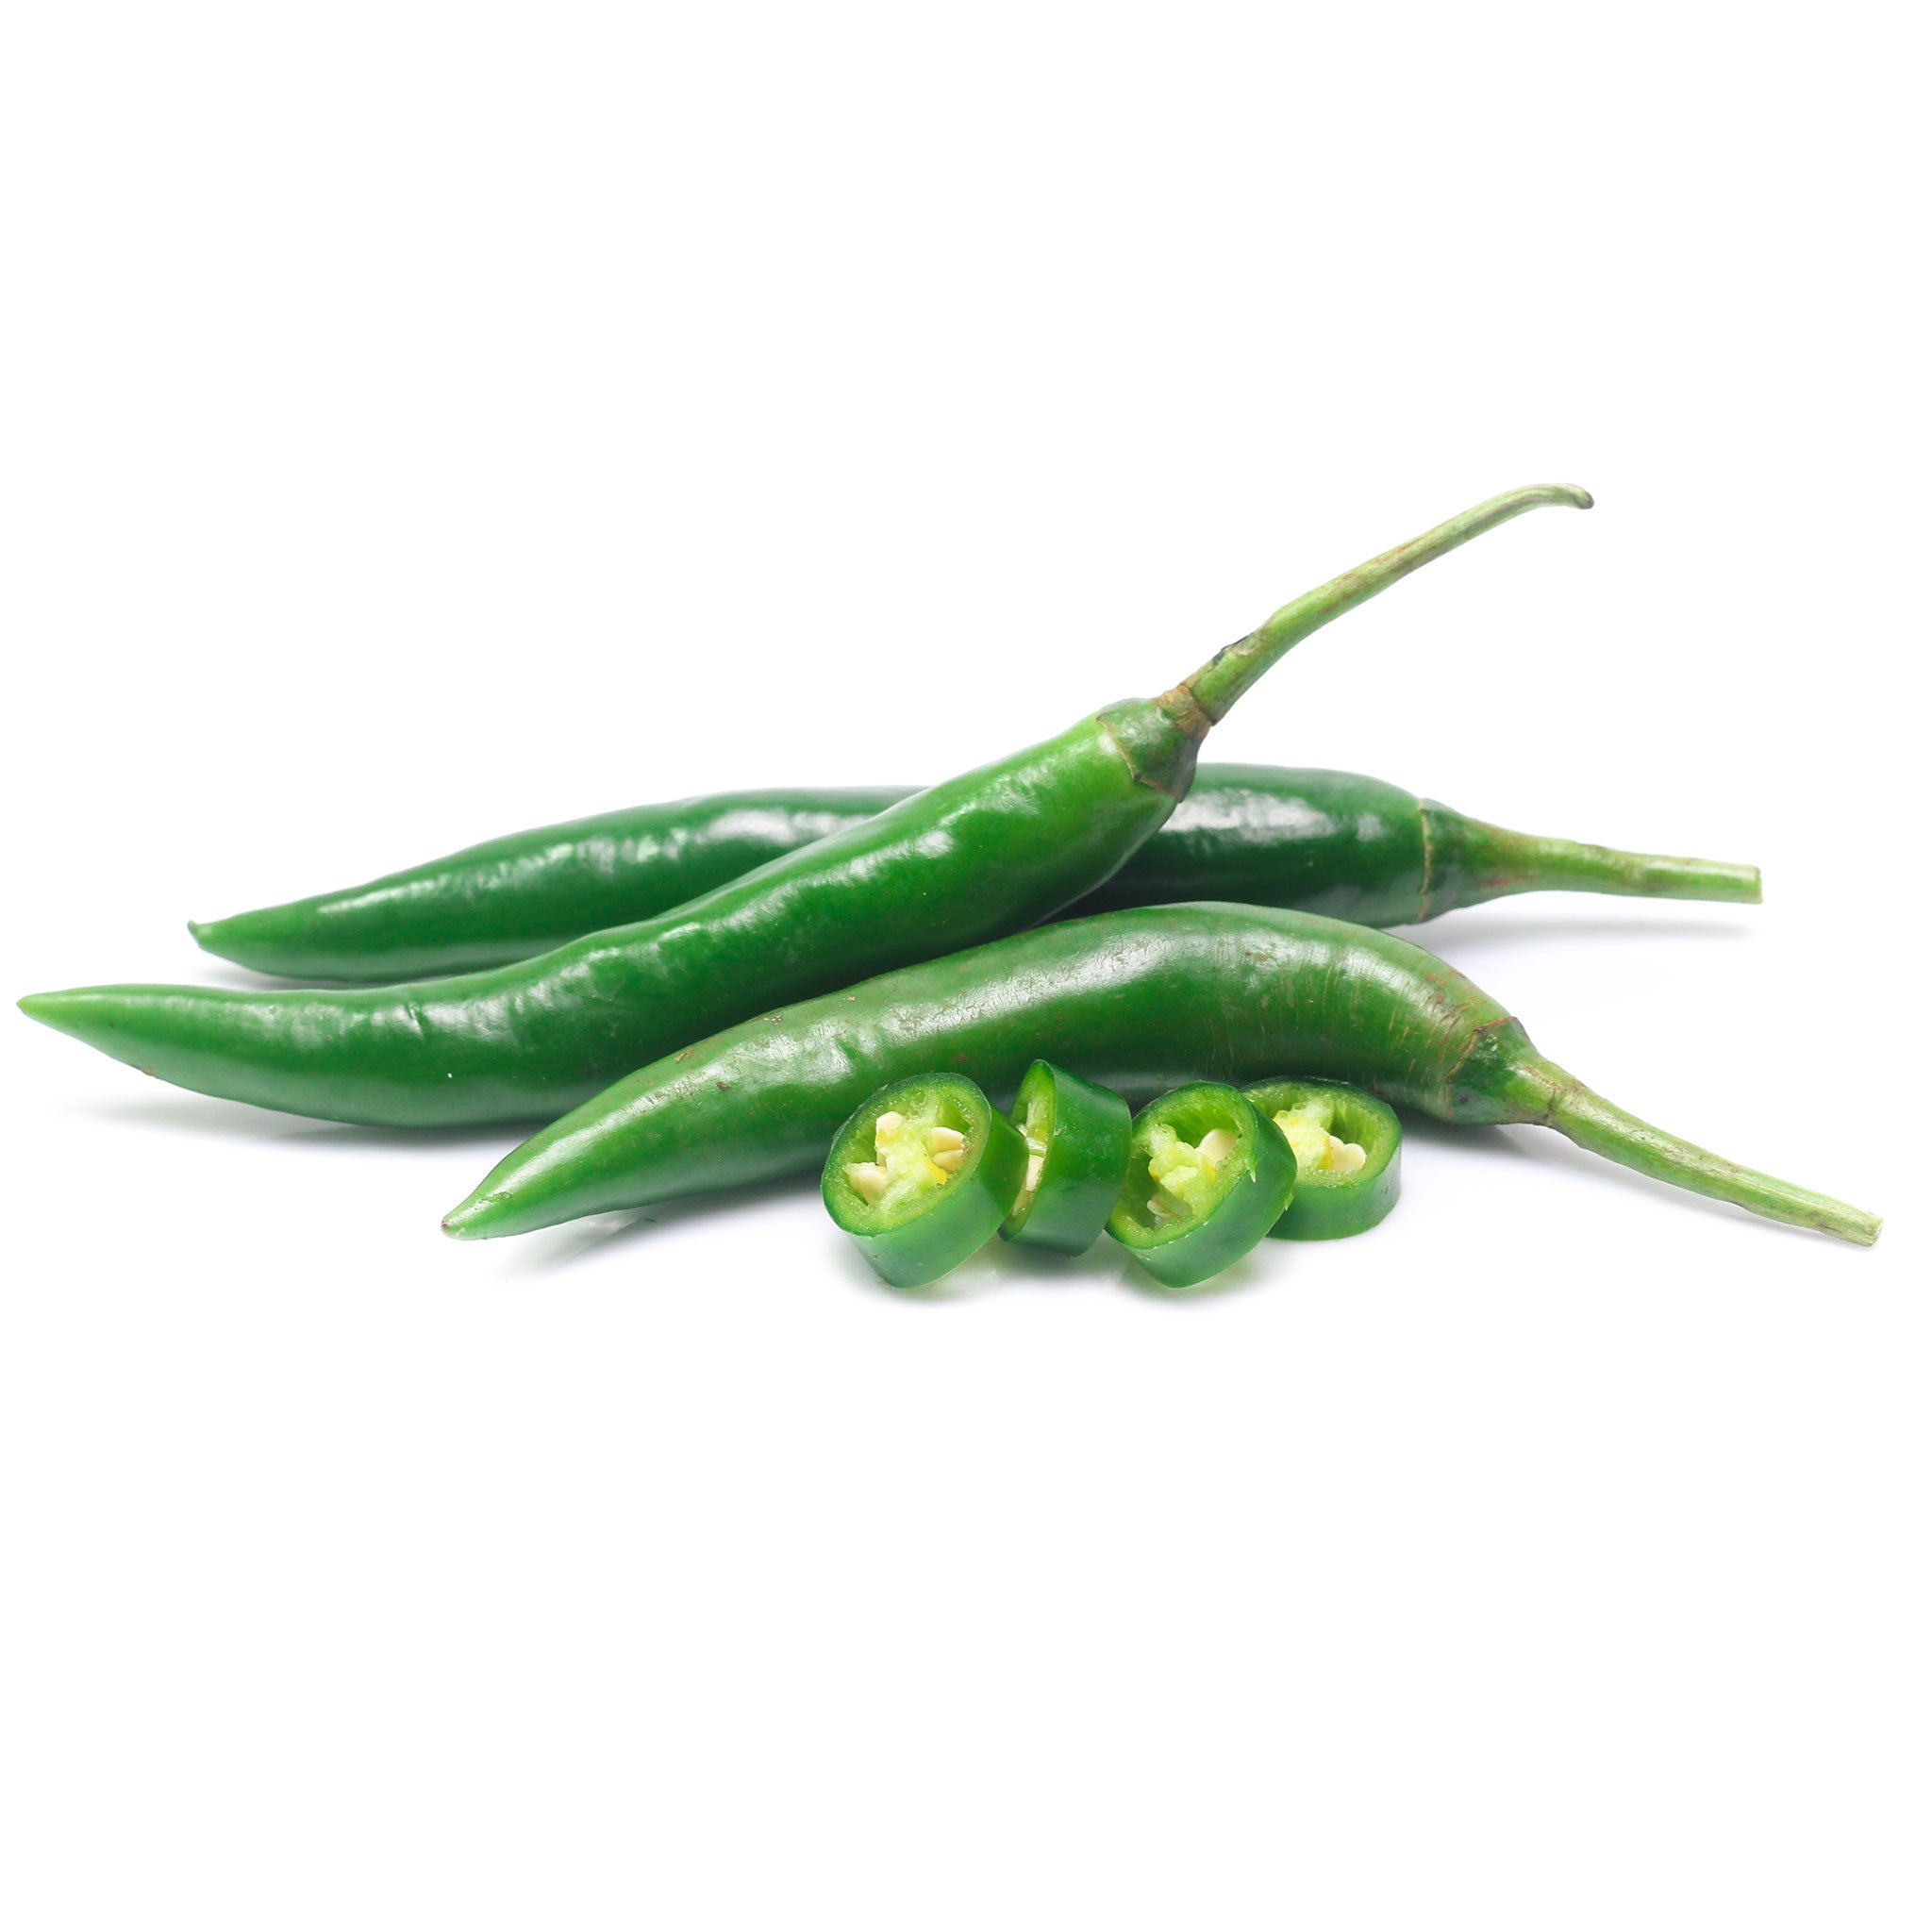 Fresh large green Thai chillies 100g - imported weekly from Thailand